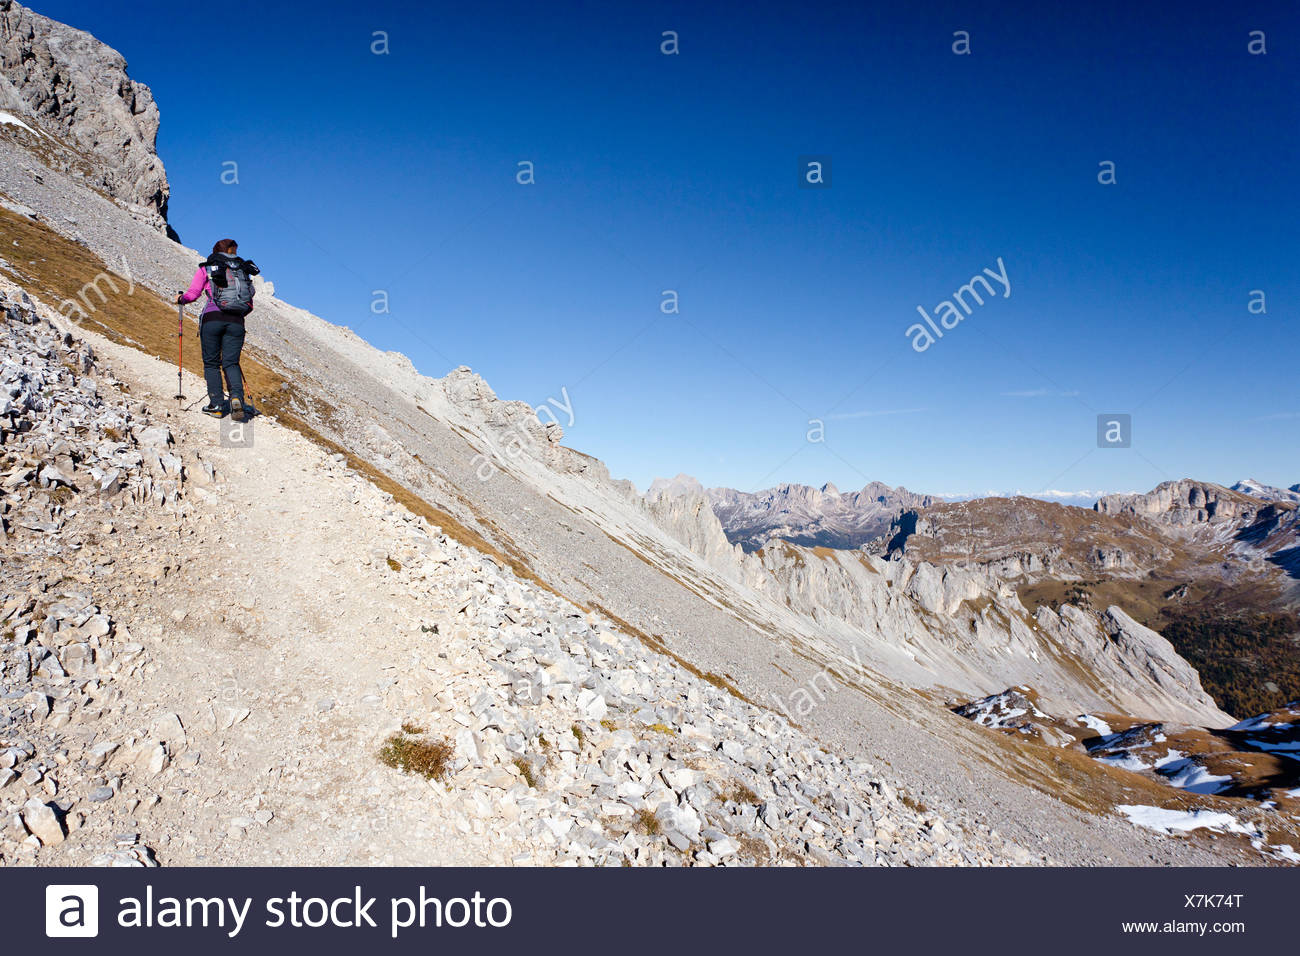 Hiker ascending the Bepi Zac climbing route in the San Pellegrino Valley above the San Pellegrino Pass Stock Photo